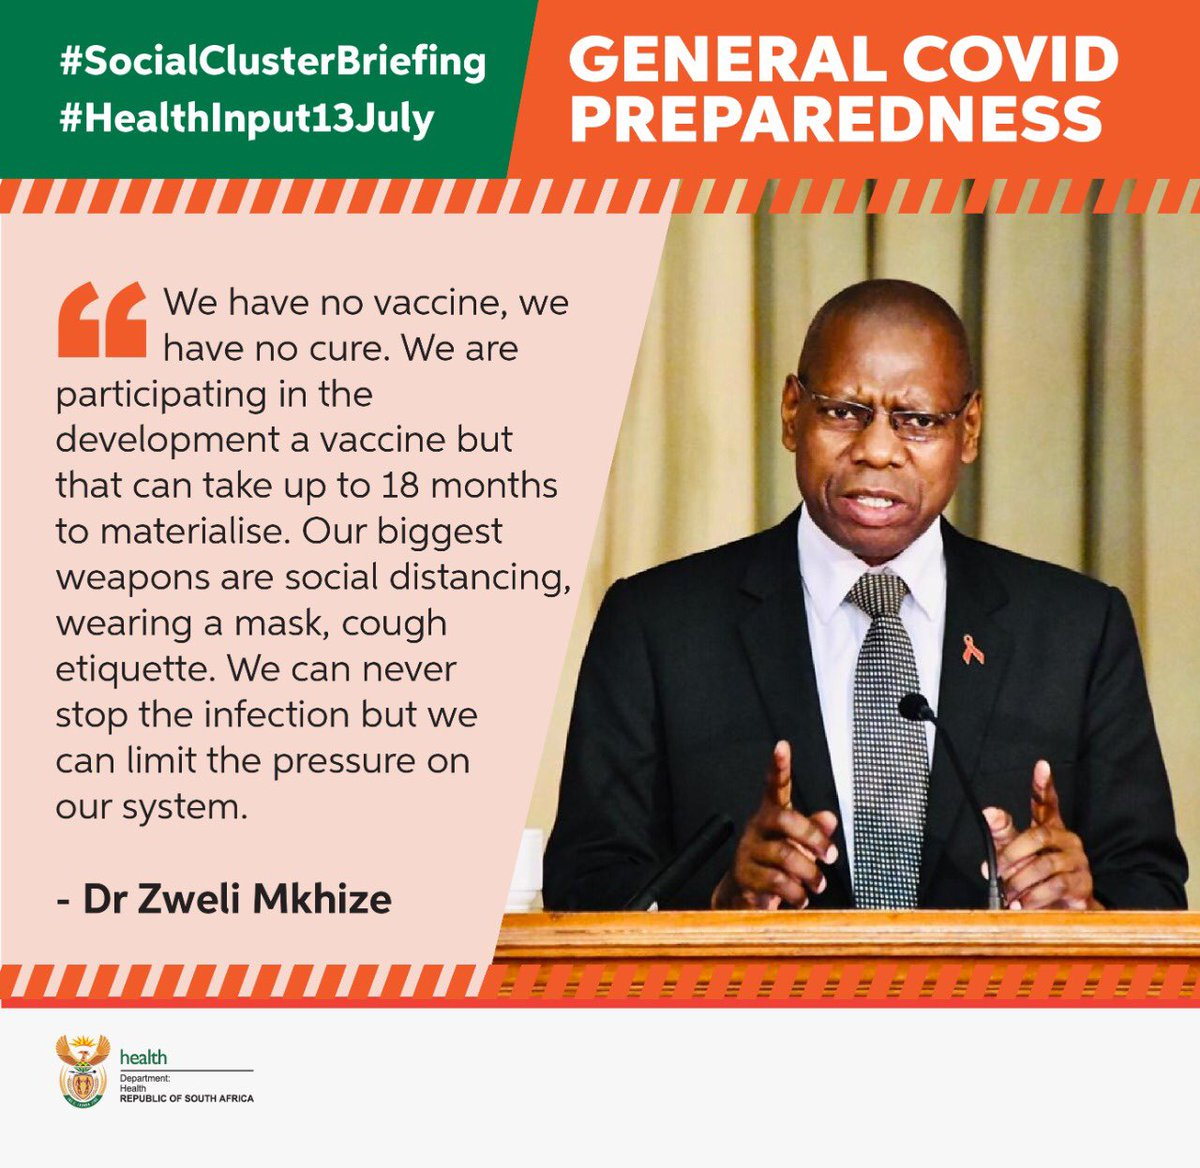 #SocialClusterBriefing #HealthInput13July #NewNormal